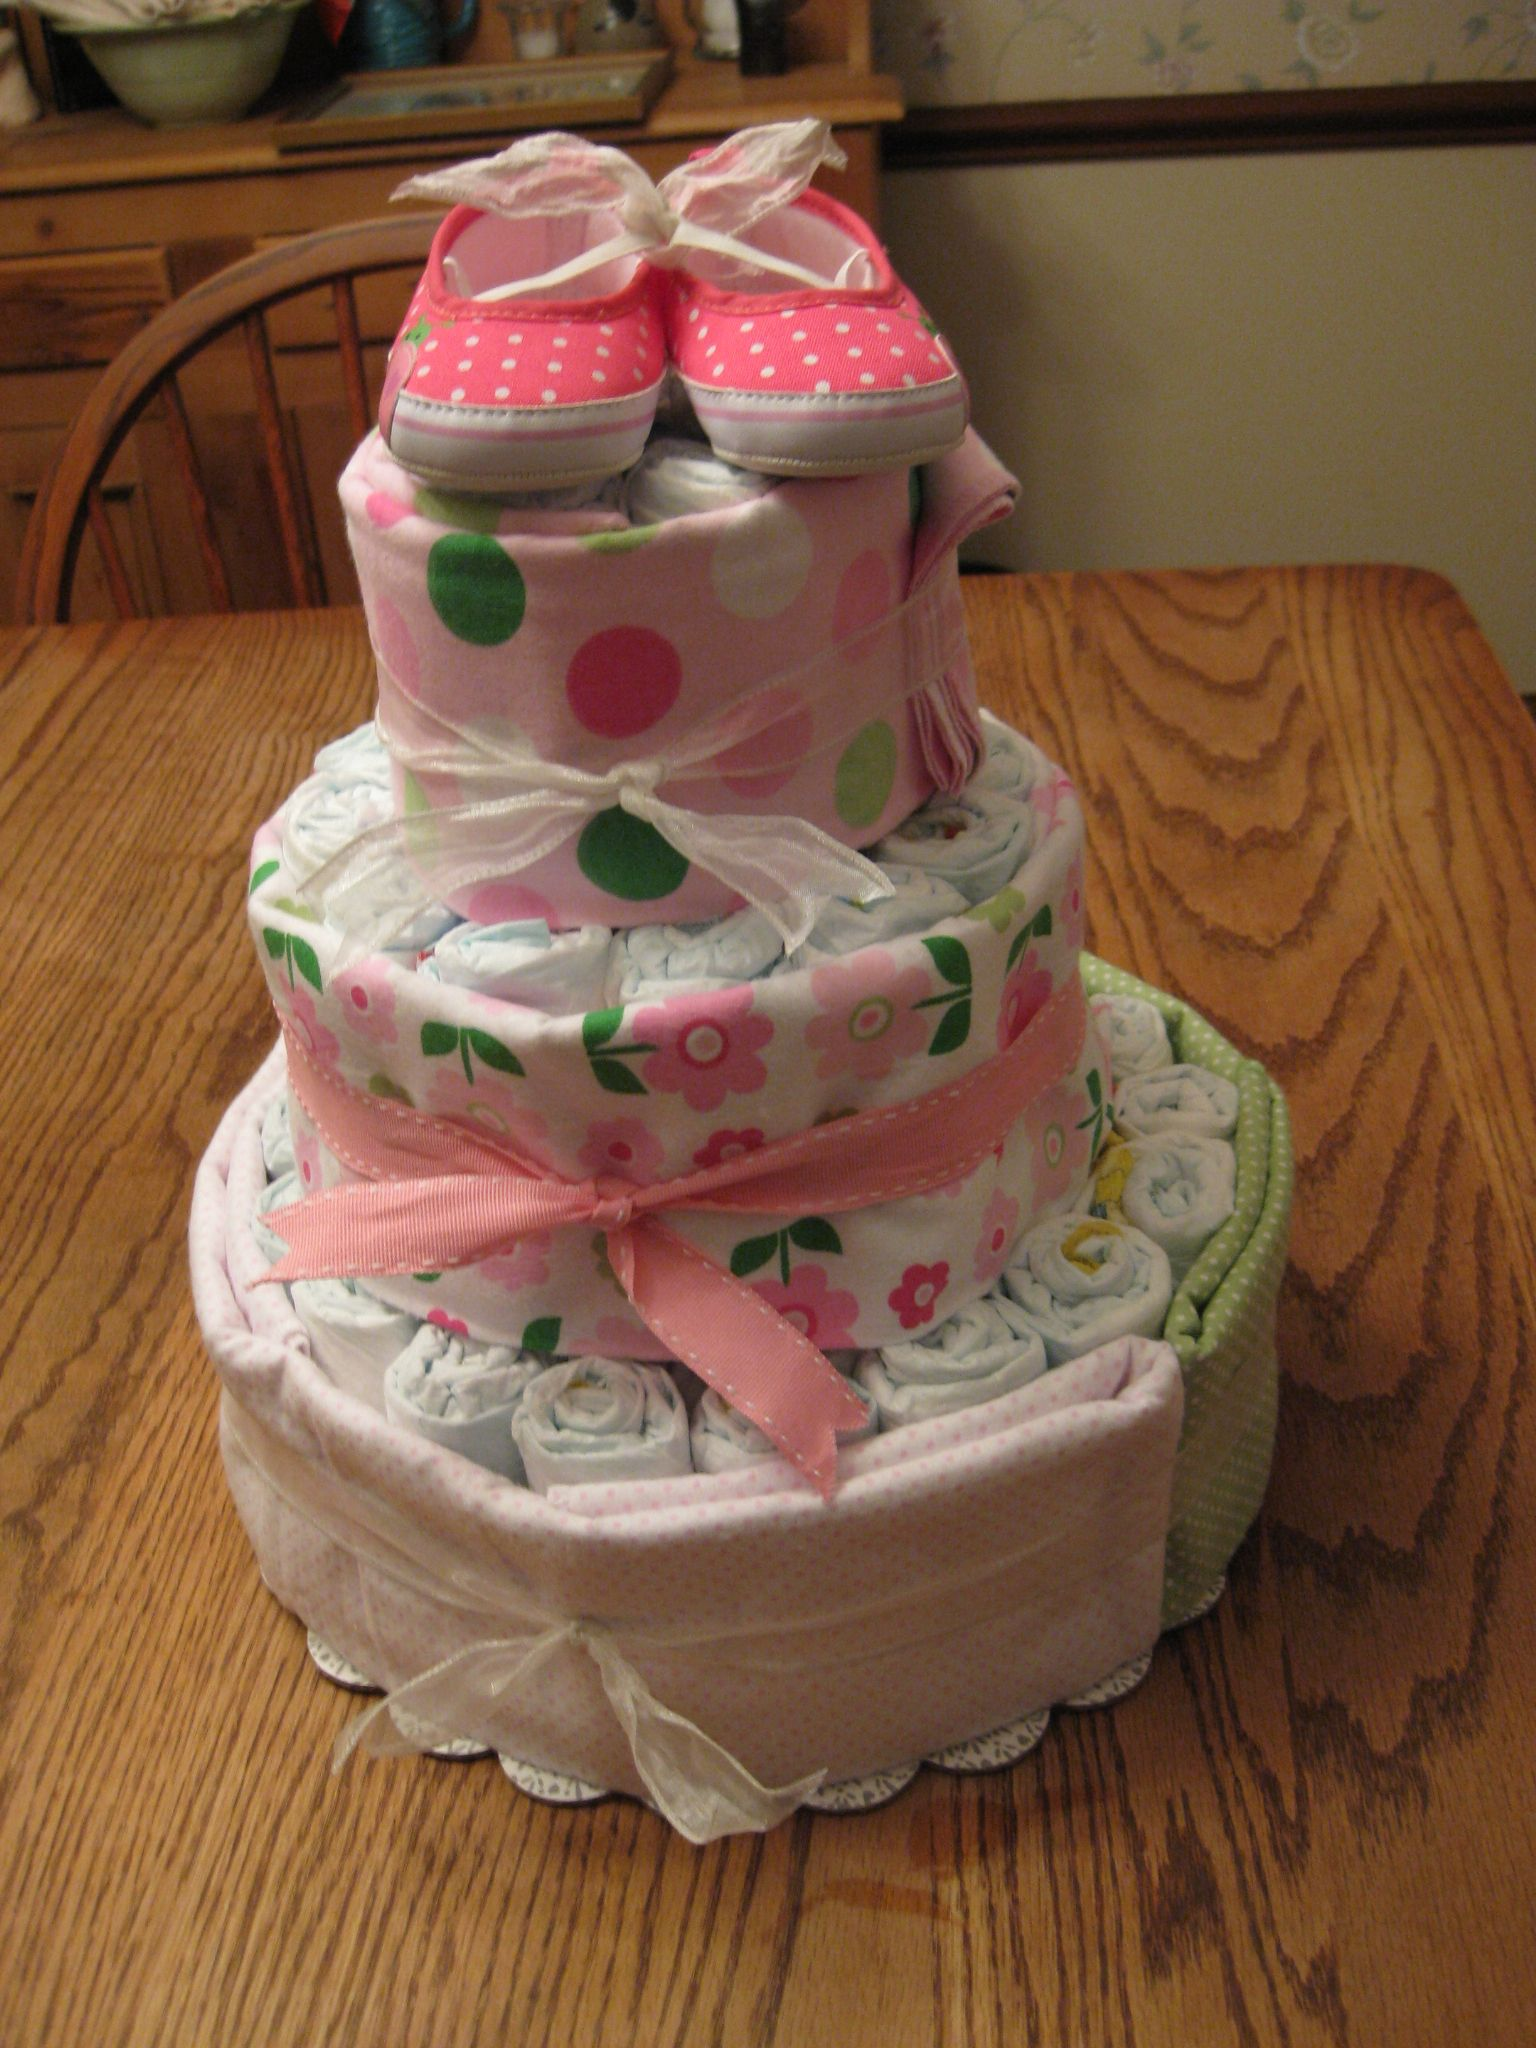 Pinterest do it yourself crafts diaper cake abigail i made it pinterest do it yourself crafts diaper cake abigail i made it do it yourself craft solutioingenieria Choice Image